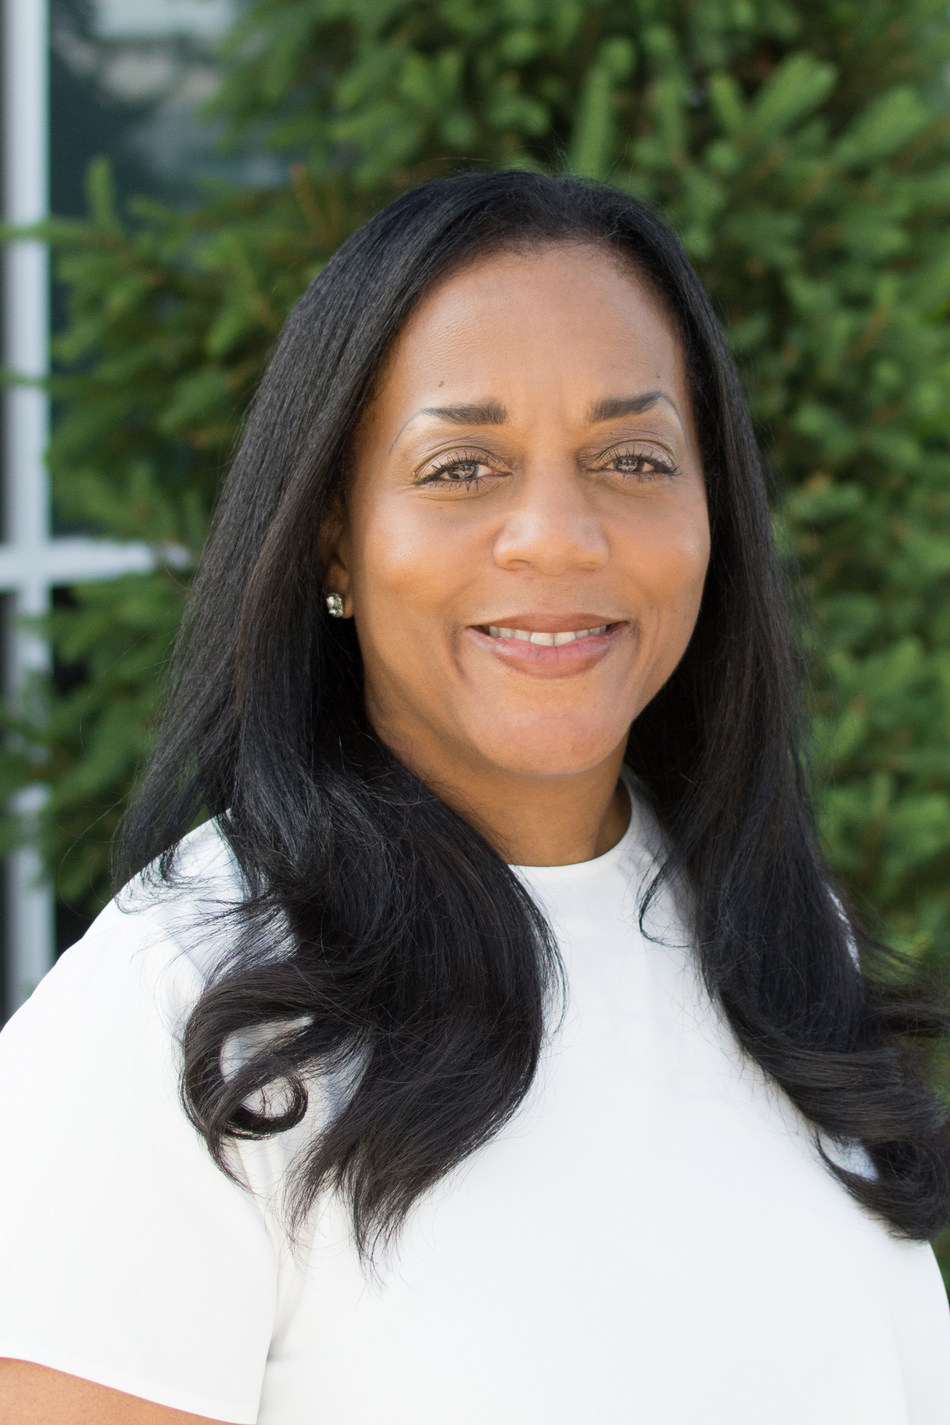 Jacque Morgan is Nav's Vice President, General Manager of Enterprise Partners. Ms. Morgan focuses on driving Nav's Enterprise Solutions and building dynamic relationships with financial and non-financial institutions.